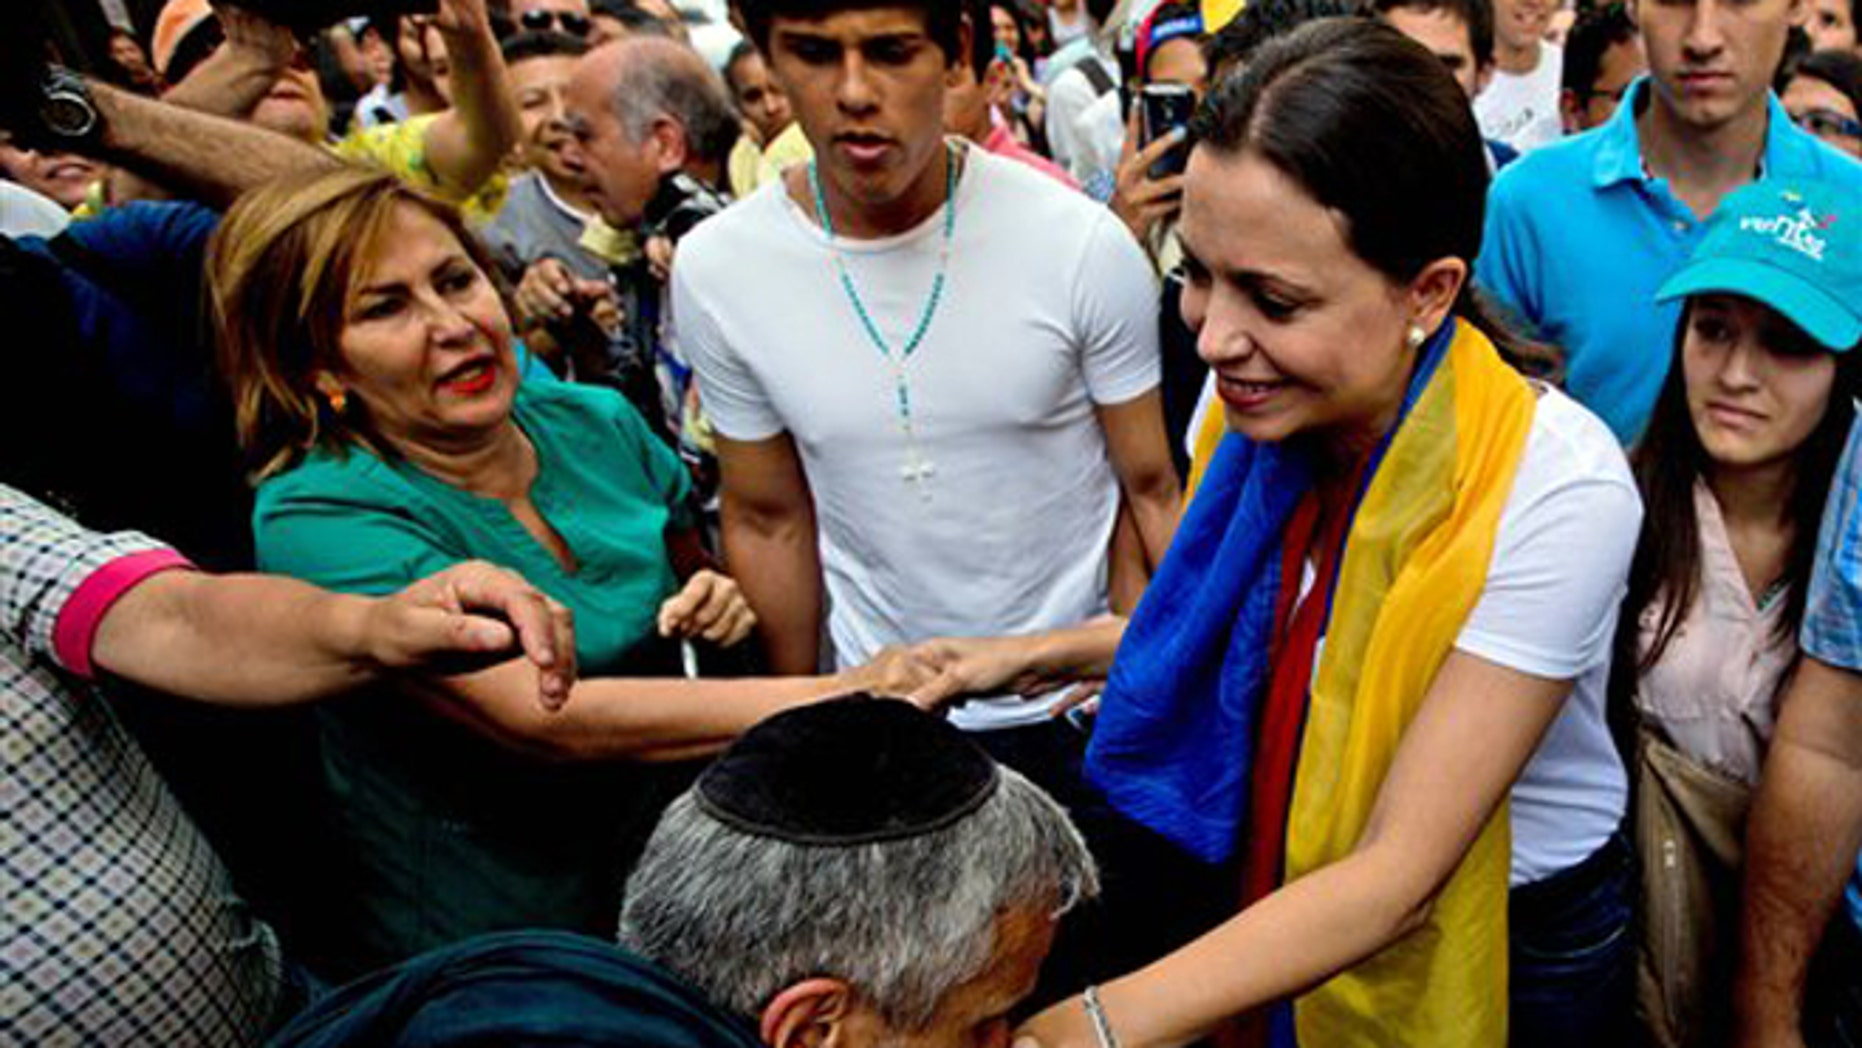 A man kisses the hand of leading opposition politician Maria Corina Machado as she arrives for a rally in Caracas, Venezuela, Wednesday, March 26, 2014. The head of Venezuela's congress, Diosdado Cabello, said Monday that Machado, who was stripped of her parliament seat, violated the constitution by addressing the Organization of American States last week at the invitation of Panama, which ceded its seat at the Washington-based group group so she could provide regional diplomats with a firsthand account of the unrest. (AP Photo/Fernando Llano)